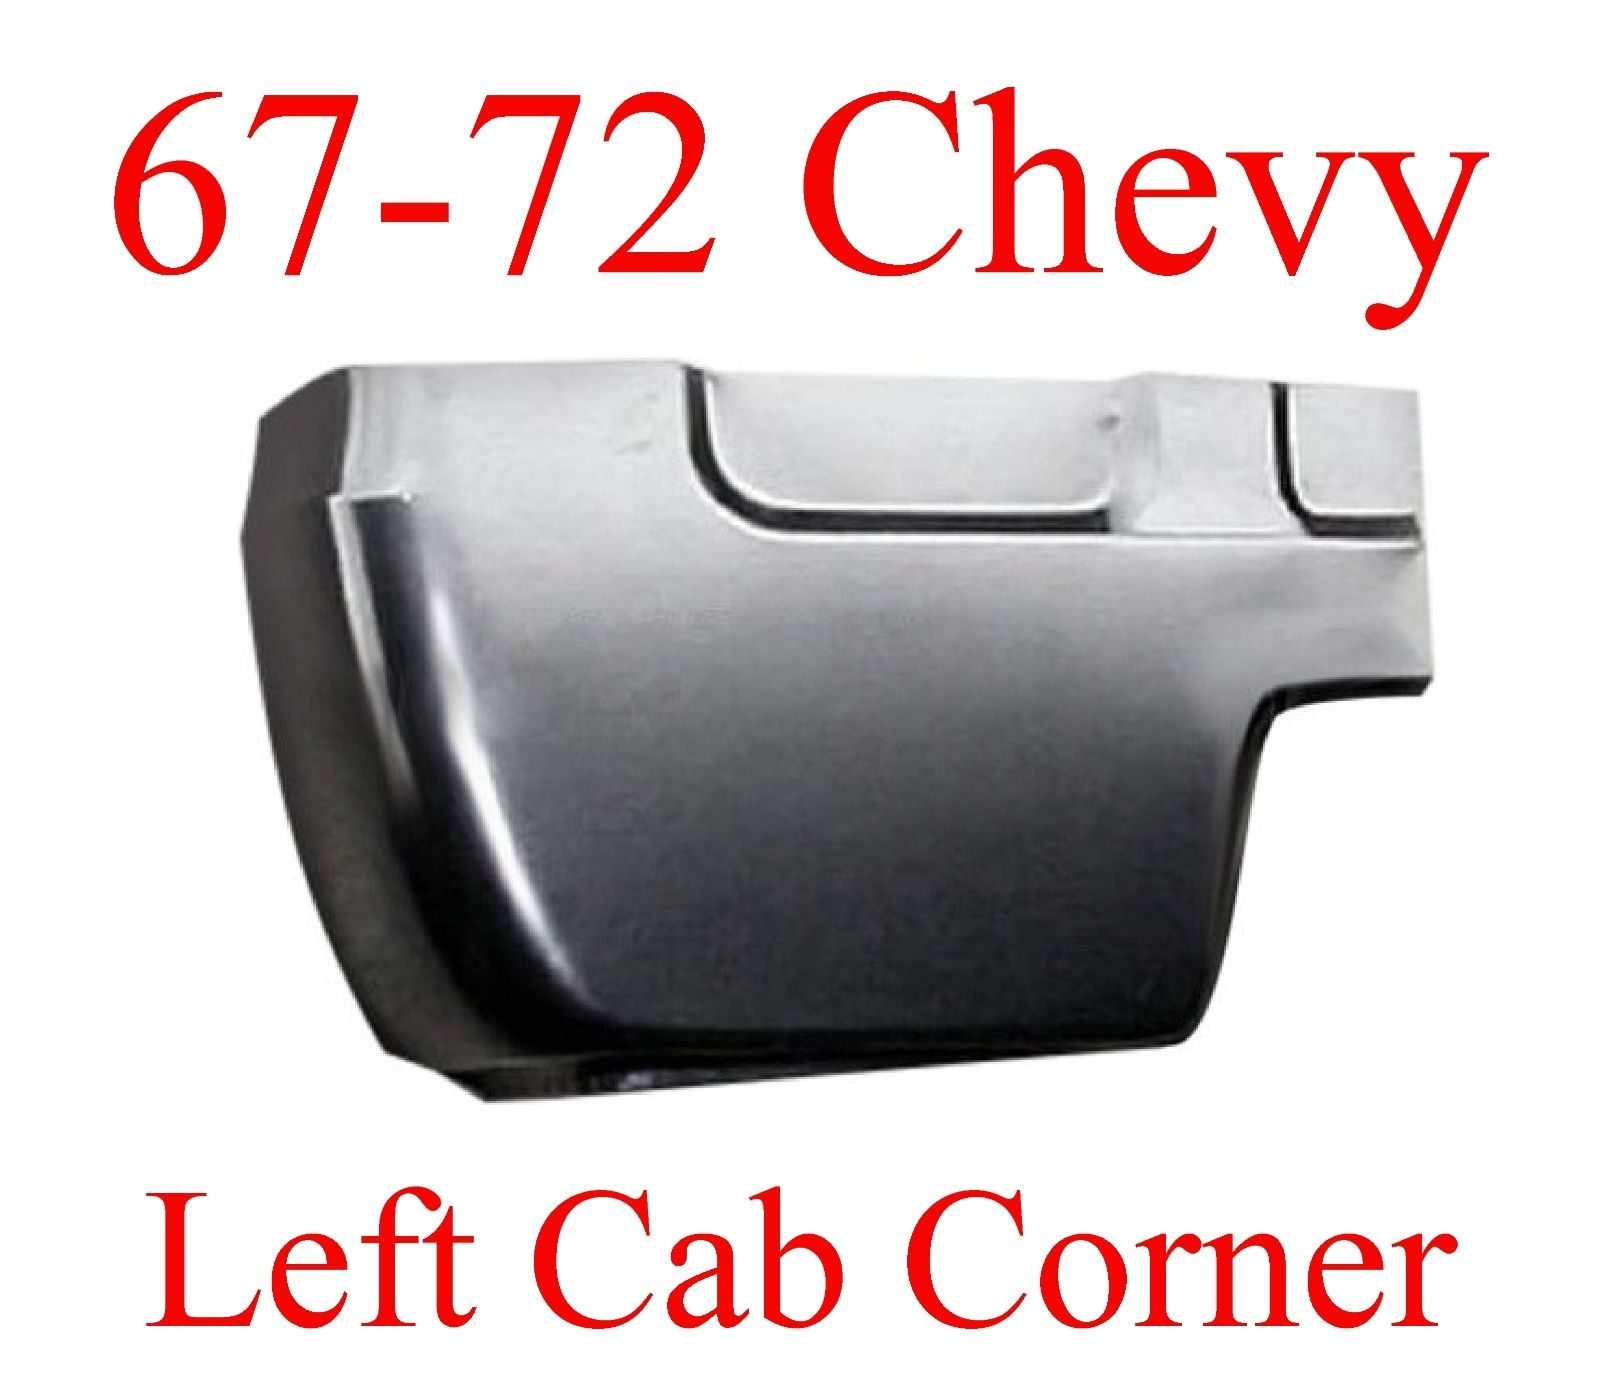 67 72 Chevy LEFT Cab Corner